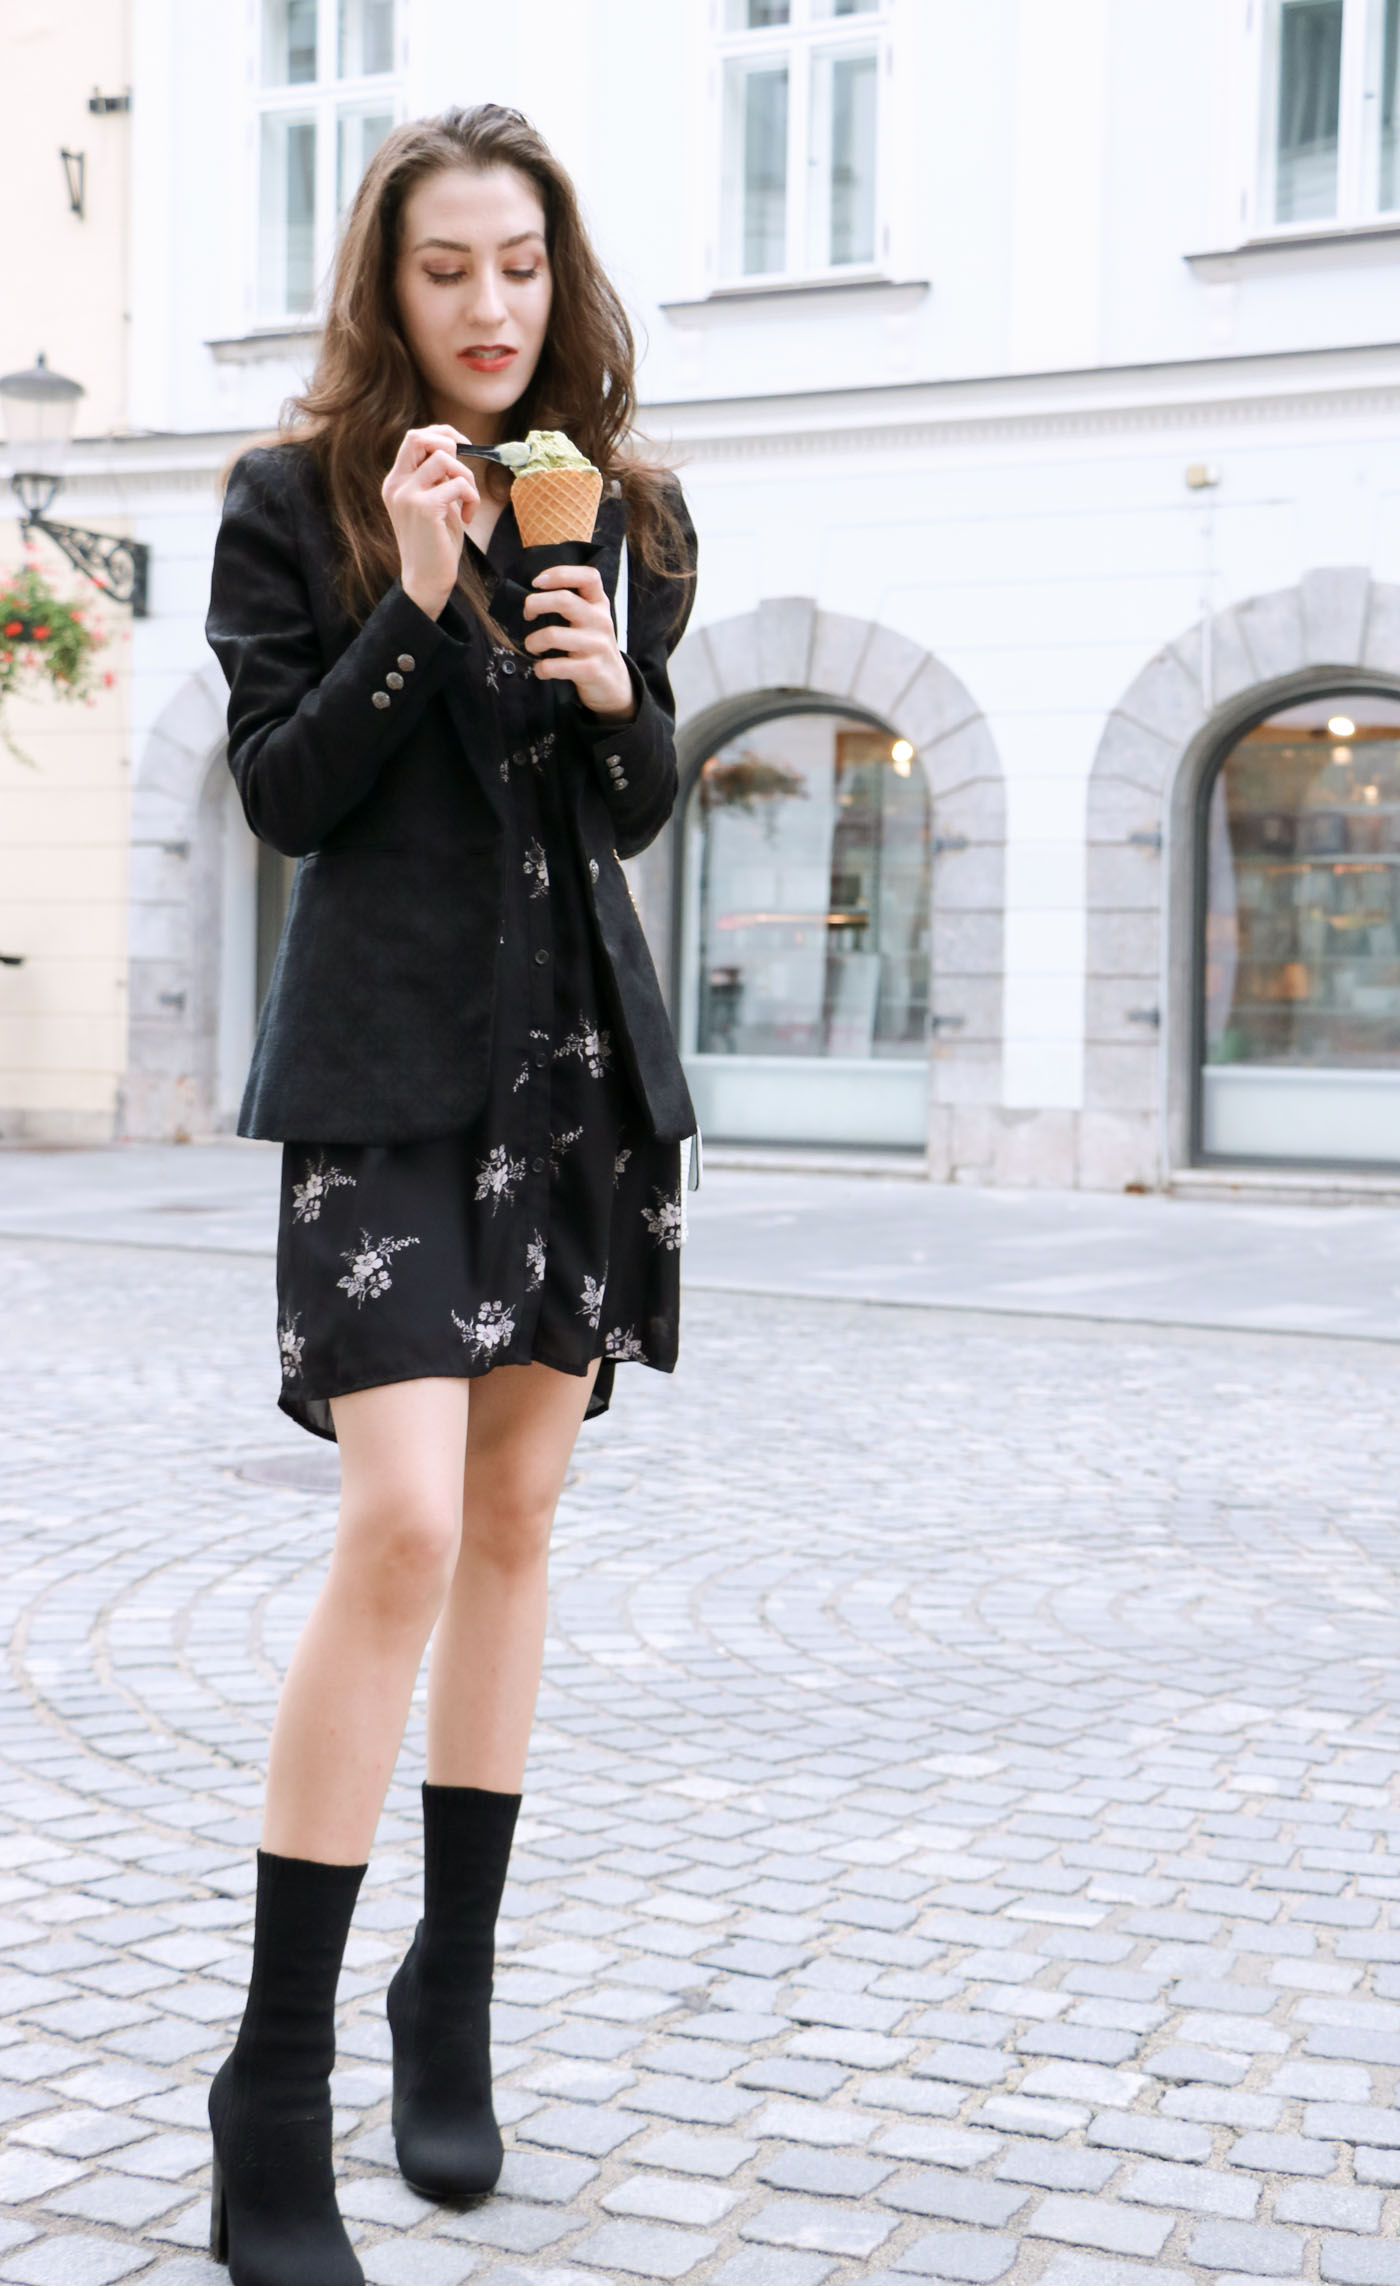 Fashion Blogger Veronika Lipar of Brunette from Wall dressed in dark floral shirt dress, black jacquard boyfriend blazer, black sock booties, white shoulder bag eating ice cream on the street